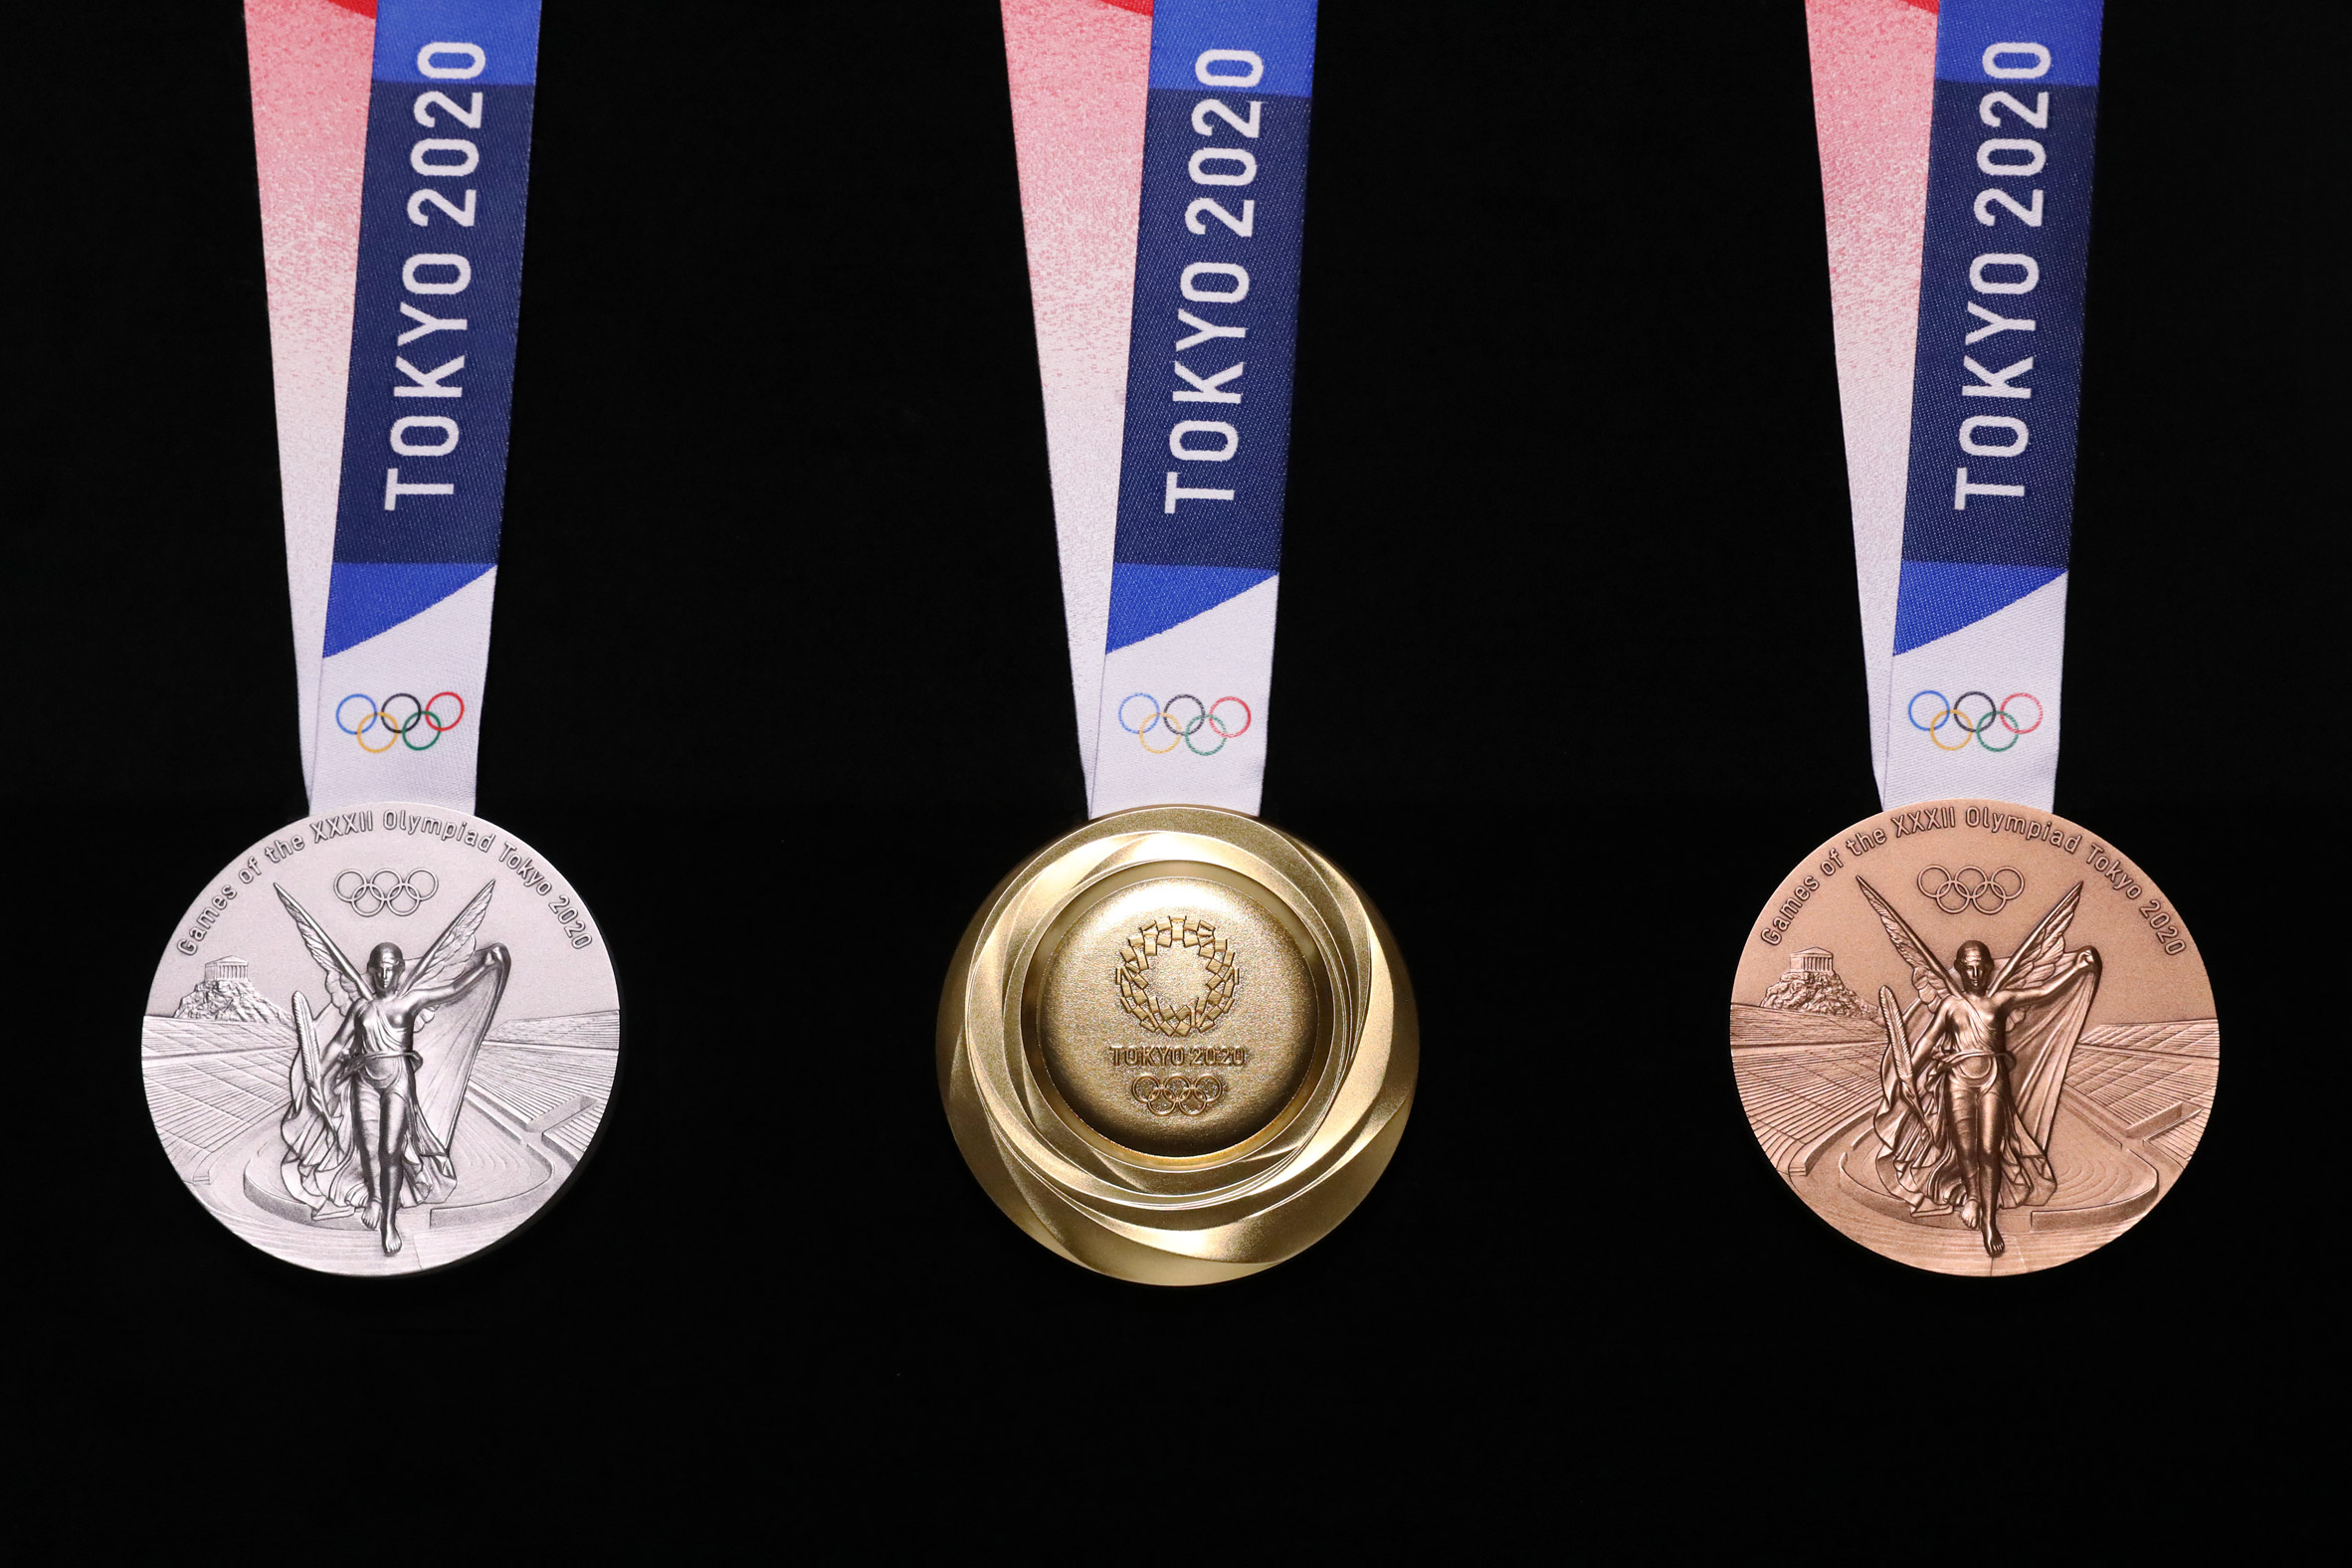 April Games With Gold 2020.Tokyo Reveals 2020 Olympic Medals Made From 6m Used